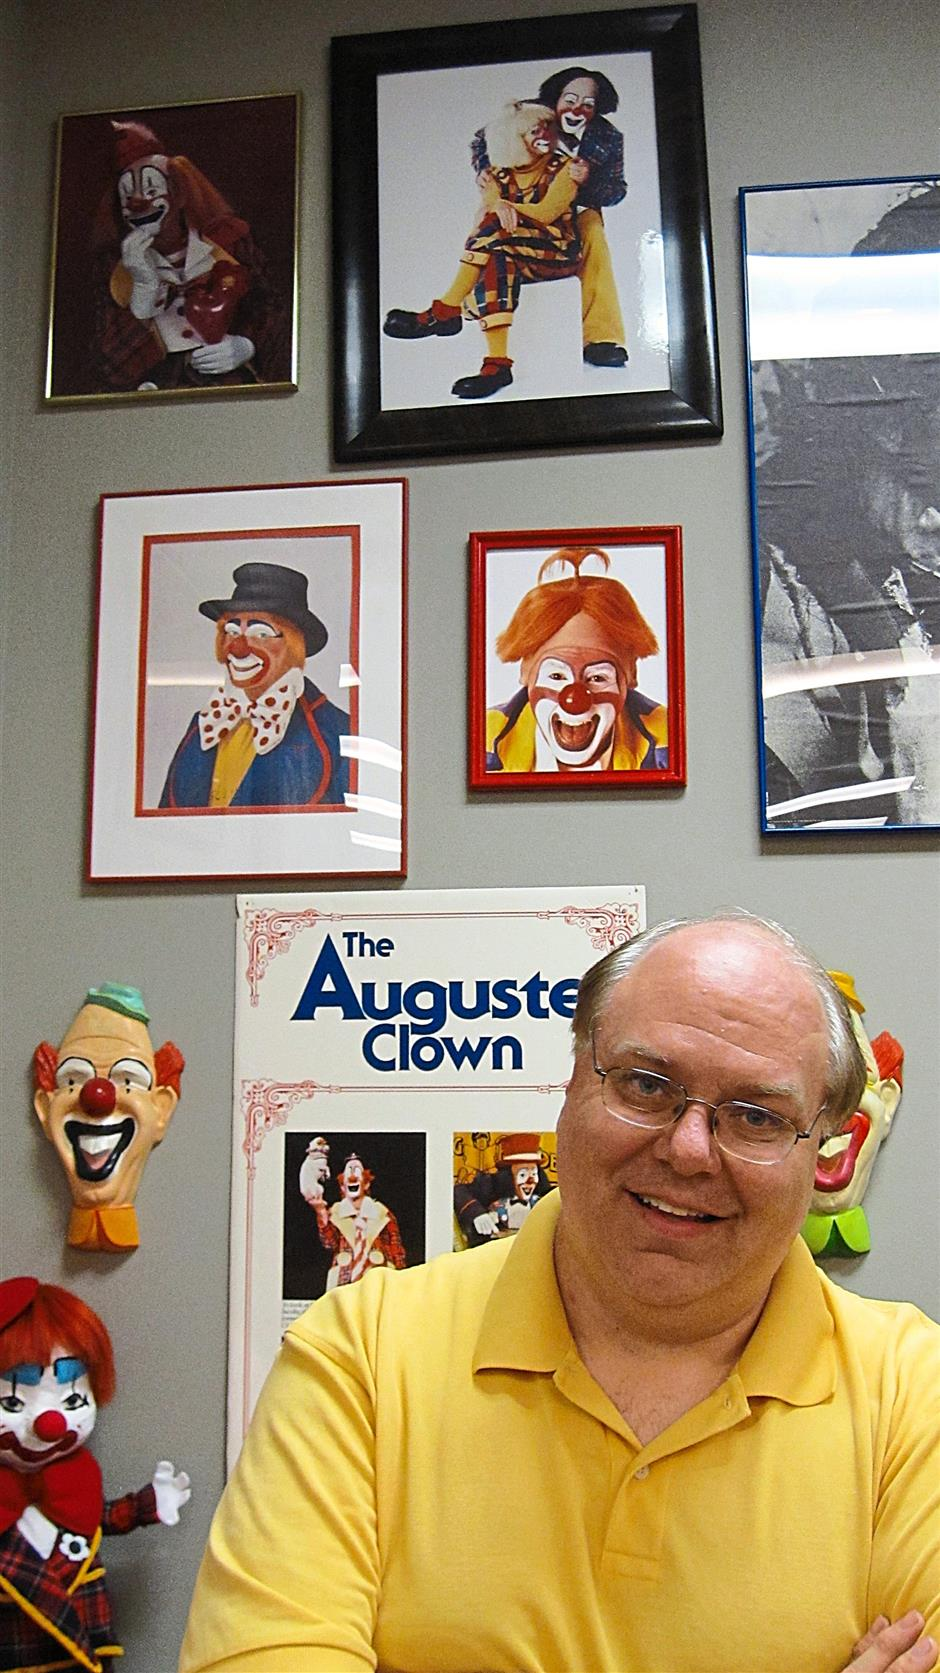 Inside the International Clown Hall of Fame. Its executive director Greg DeSanto (right) is a former Ringling Brothers clown; his wife, also a clown, is pictured in the highest photo above his head.